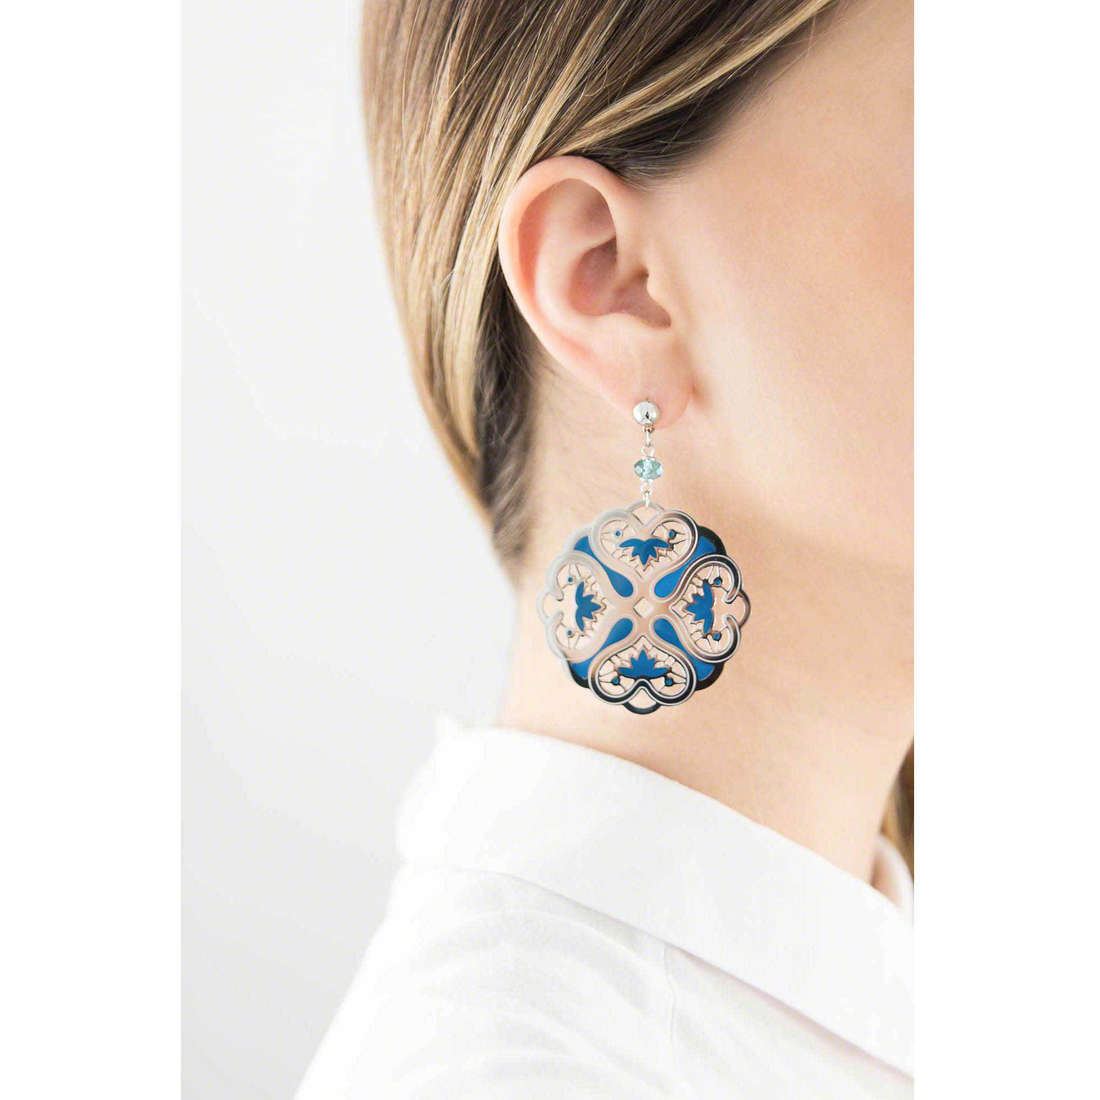 Brosway boucles d'oreille Chimera femme BKM22 indosso